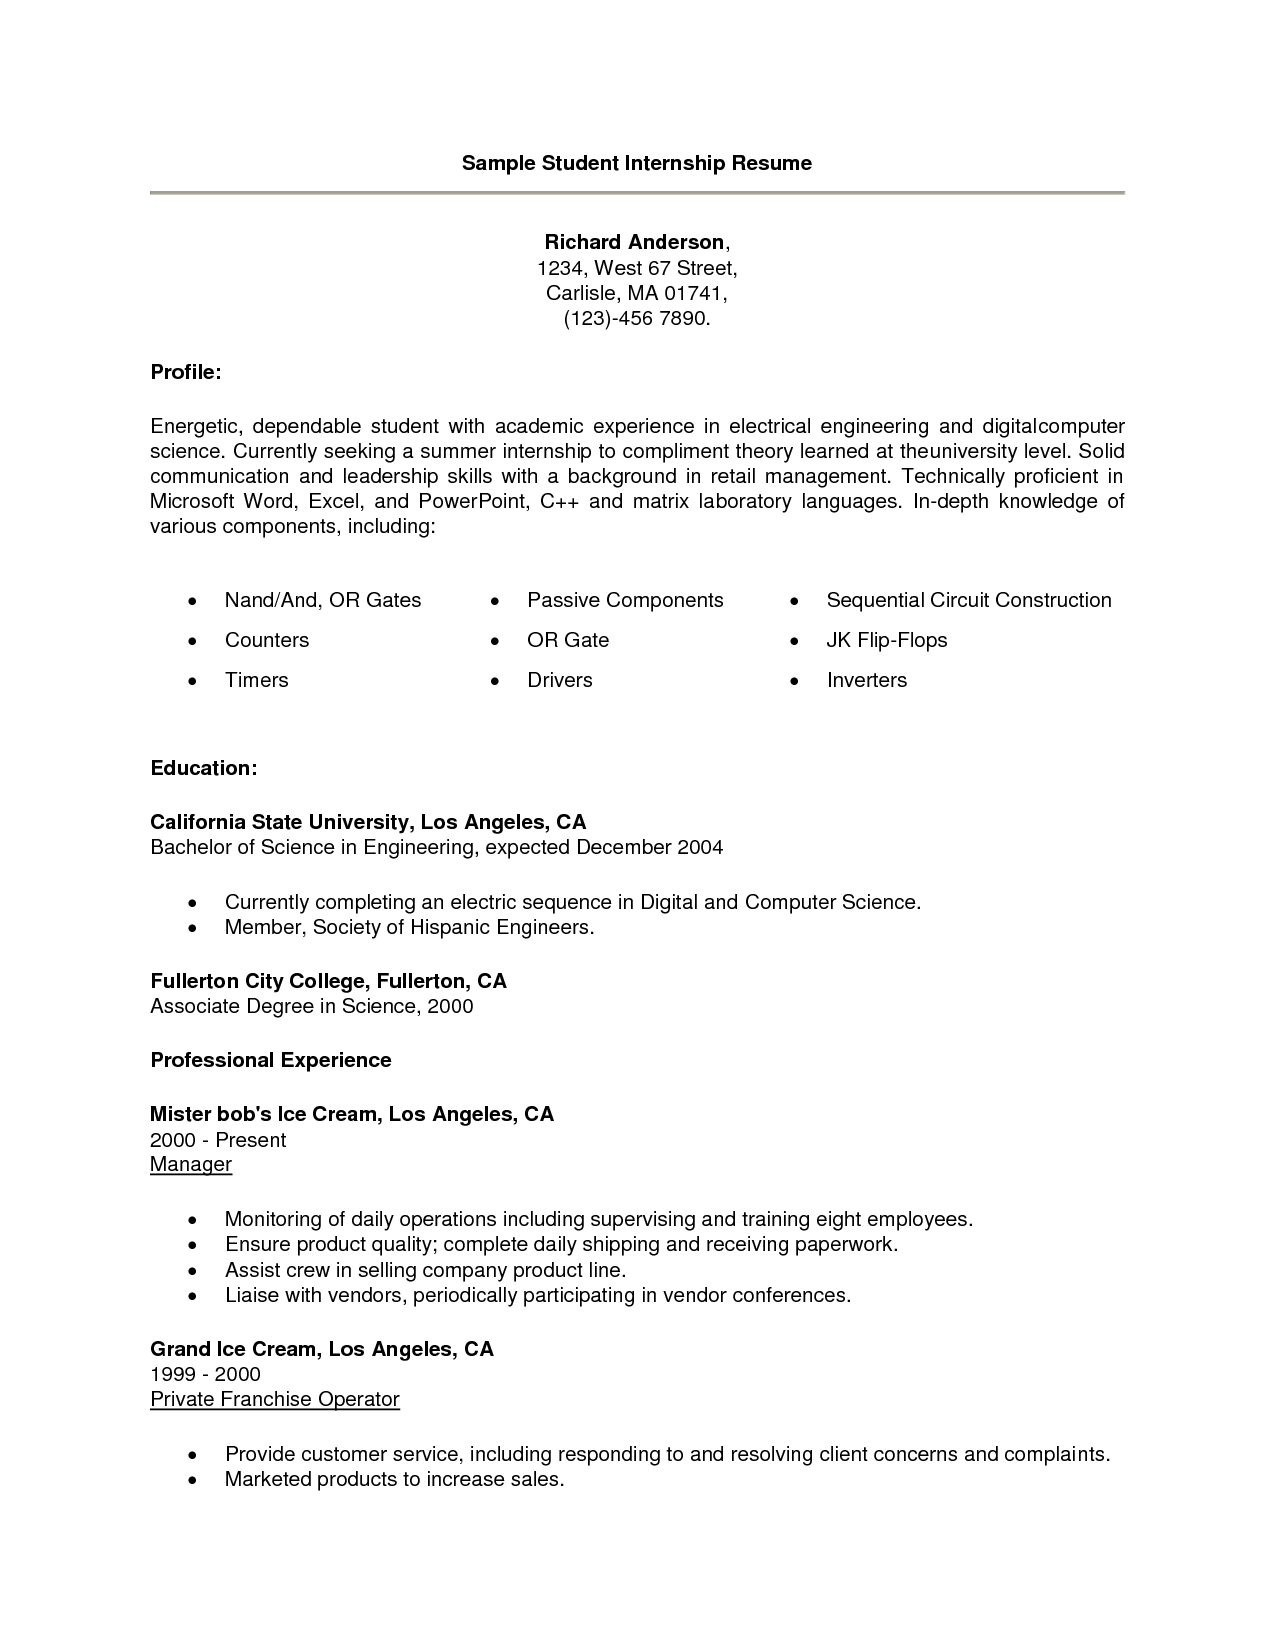 Resume for Summer Internship - Internship Resume Template Fresh Luxury Grapher Resume Sample